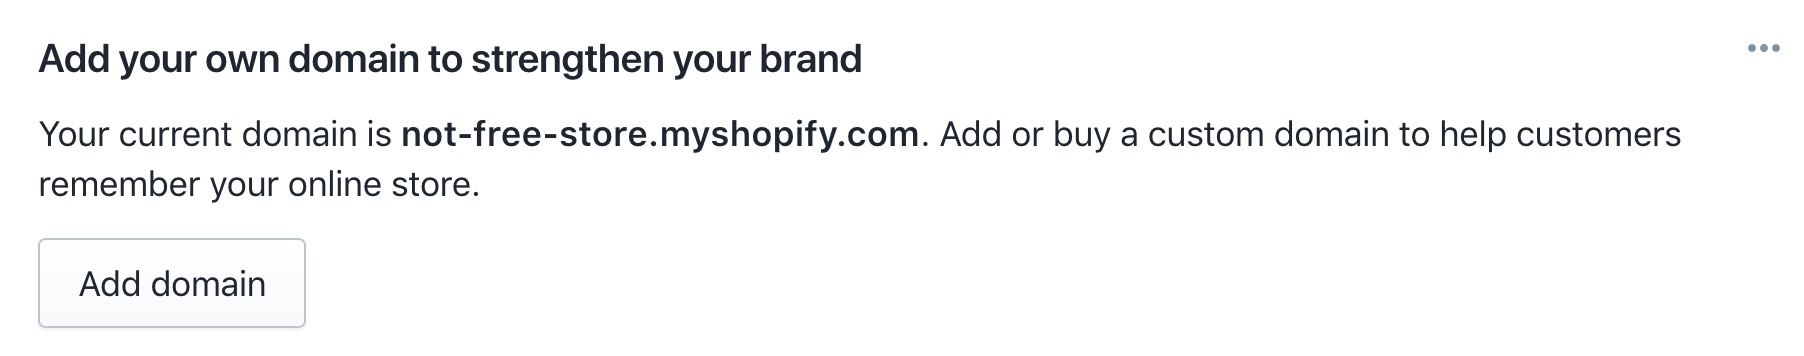 Registre nomes de domínio do Shopify